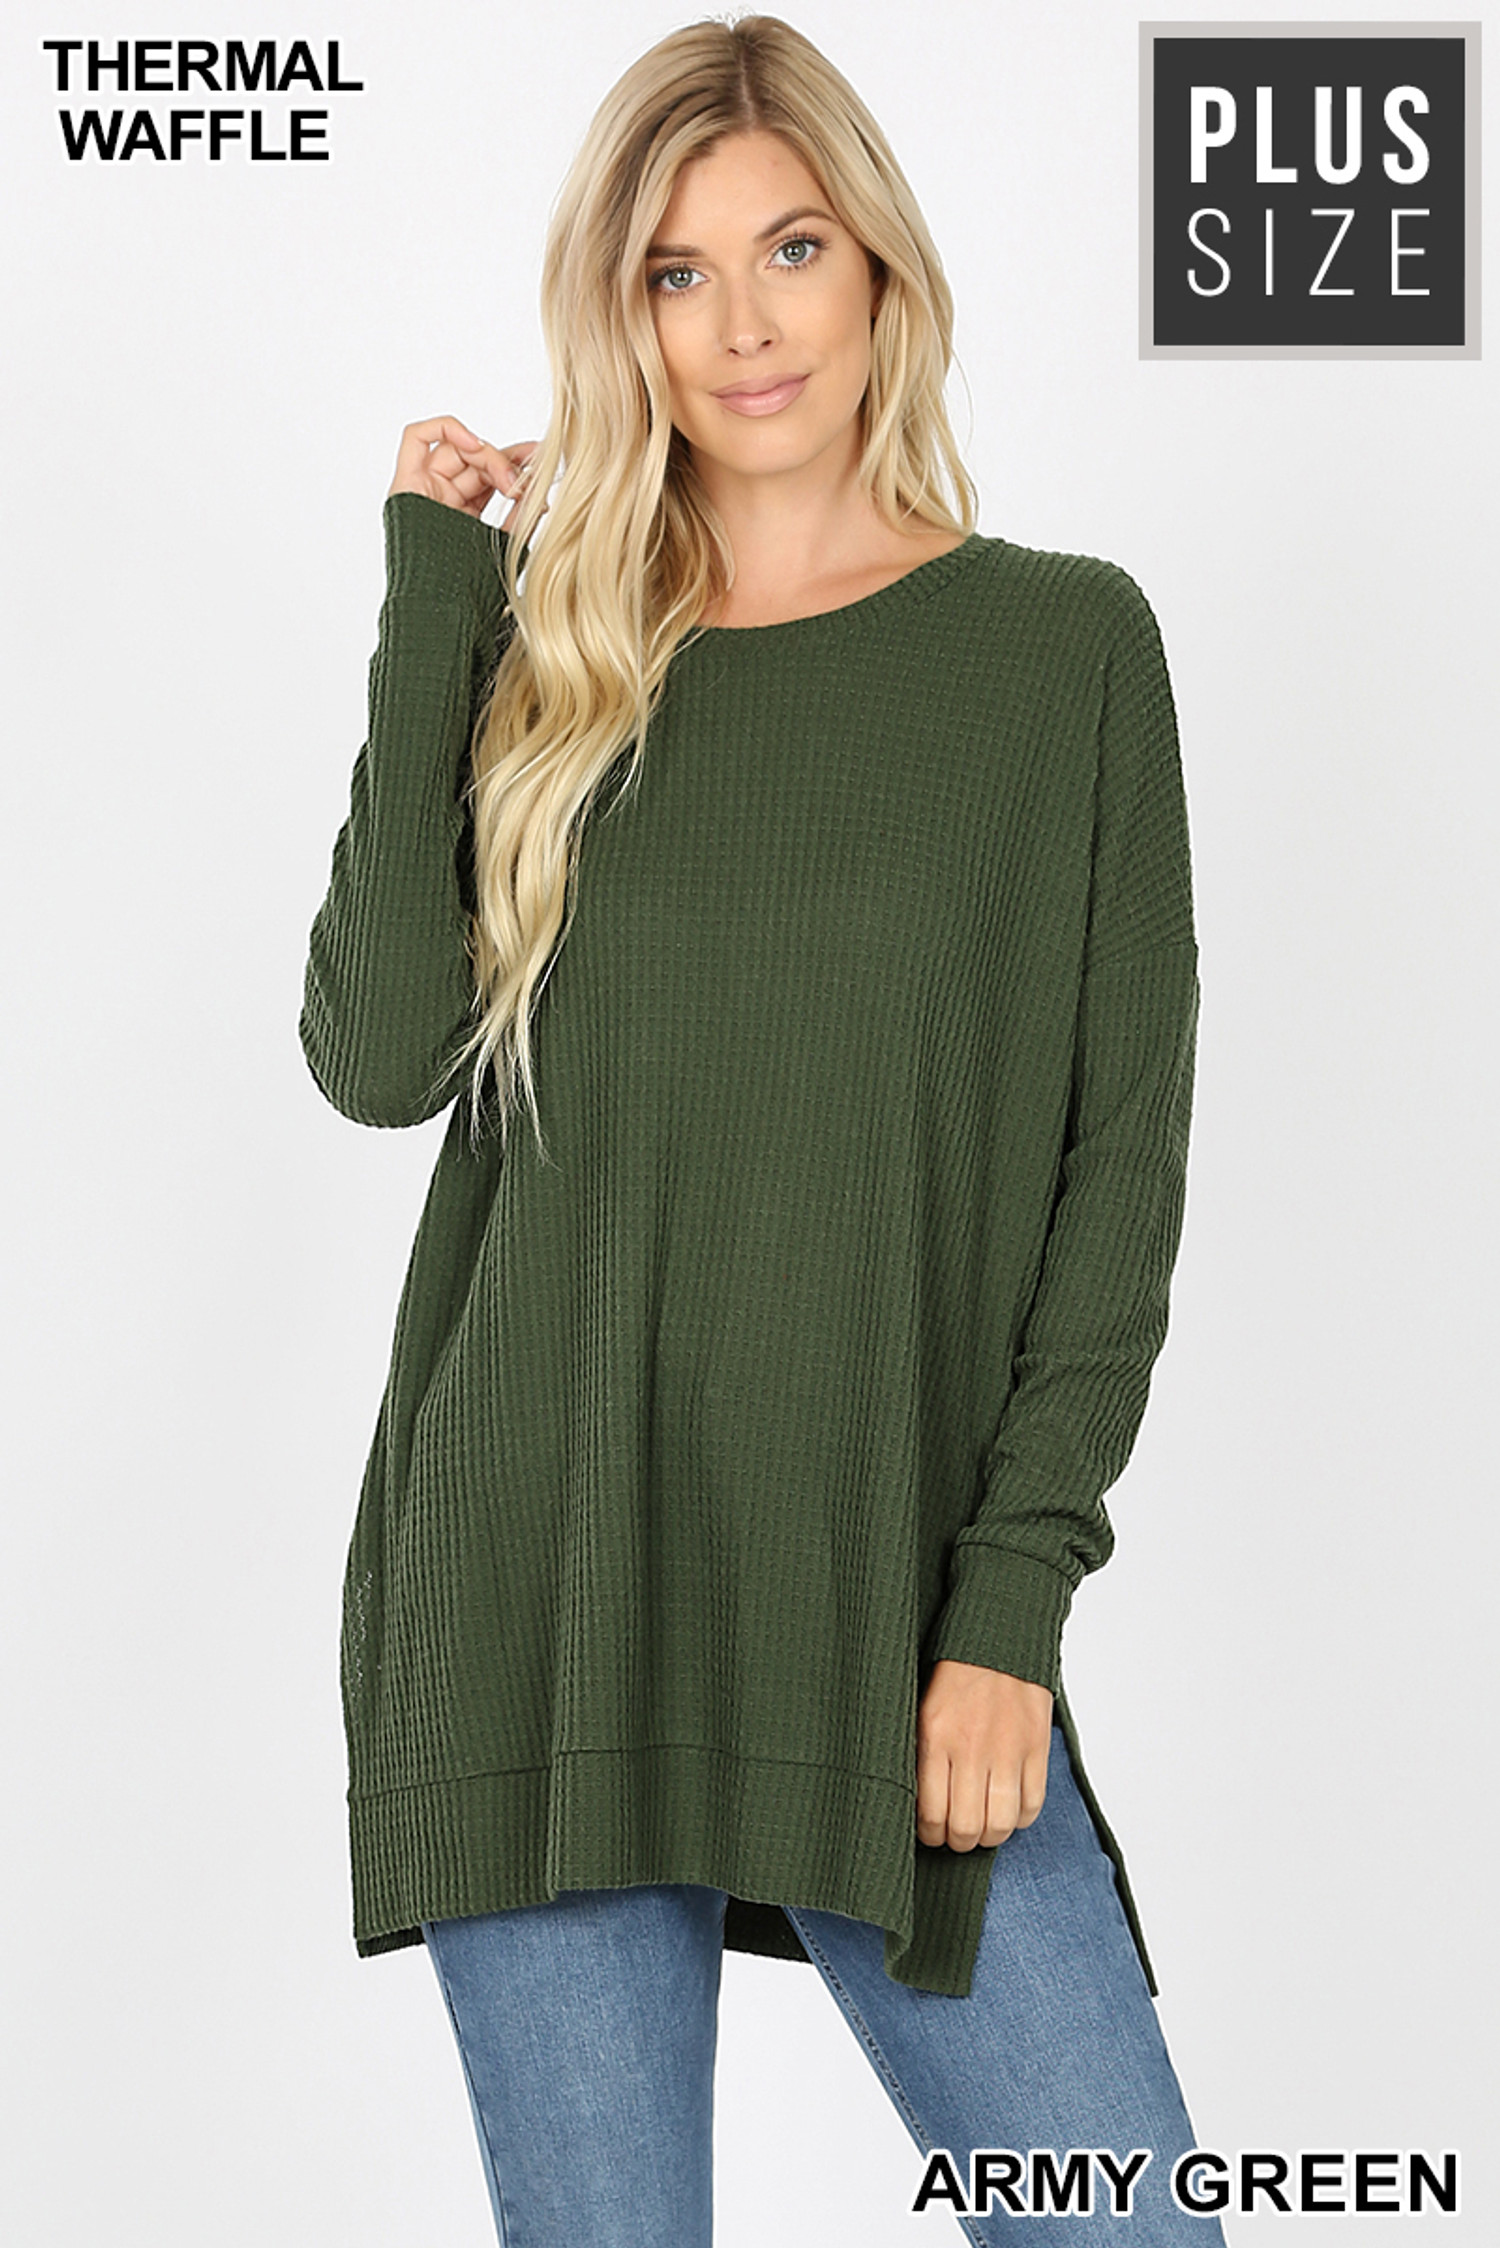 Front image of Army Green Brushed Thermal Waffle Knit Round Neck Plus Size Sweater